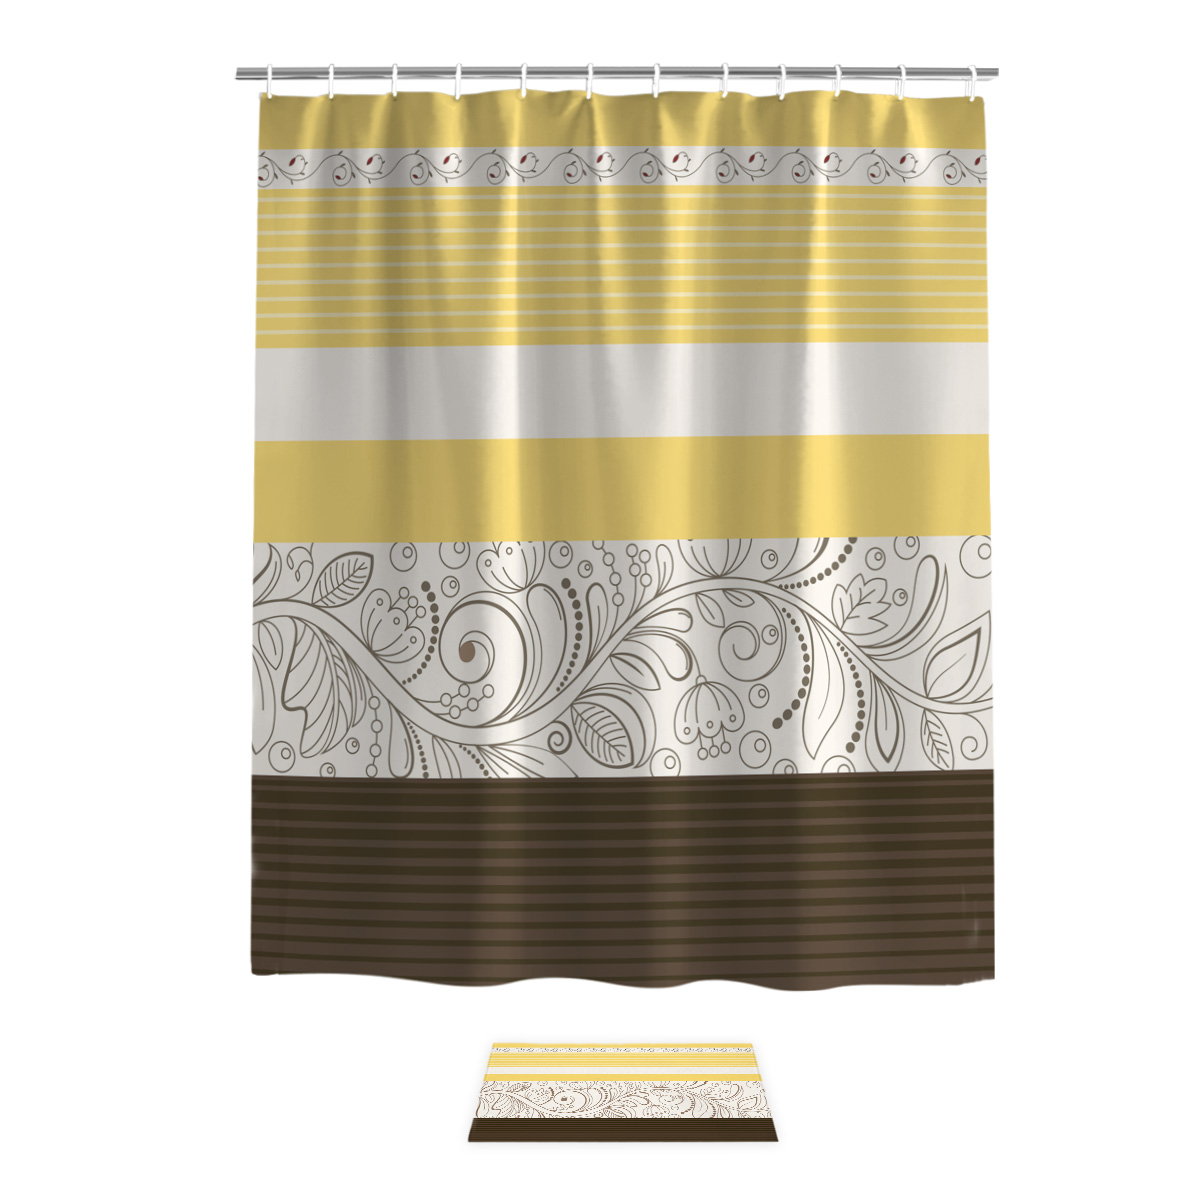 Shower Curtain Bath Sets With Rugs